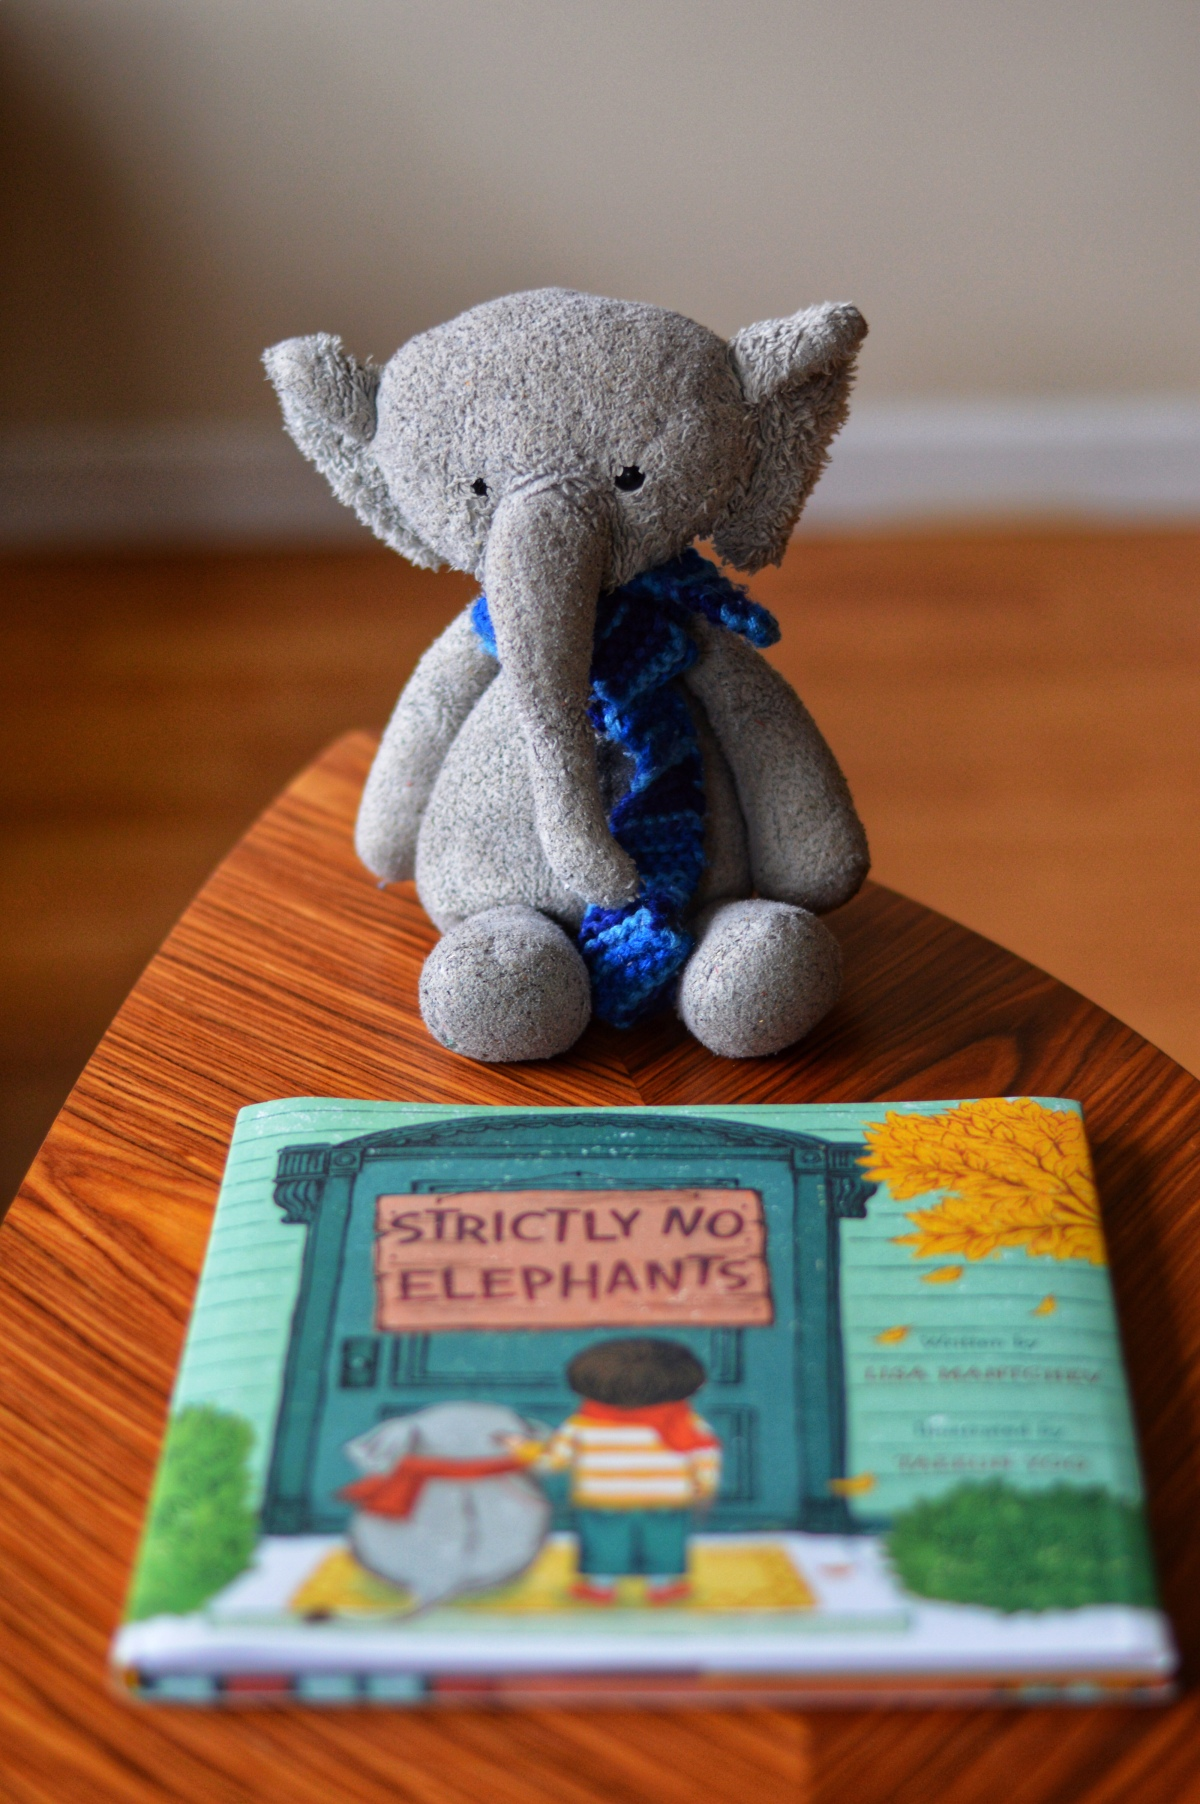 Sunday Book Club: Strictly No Elephants